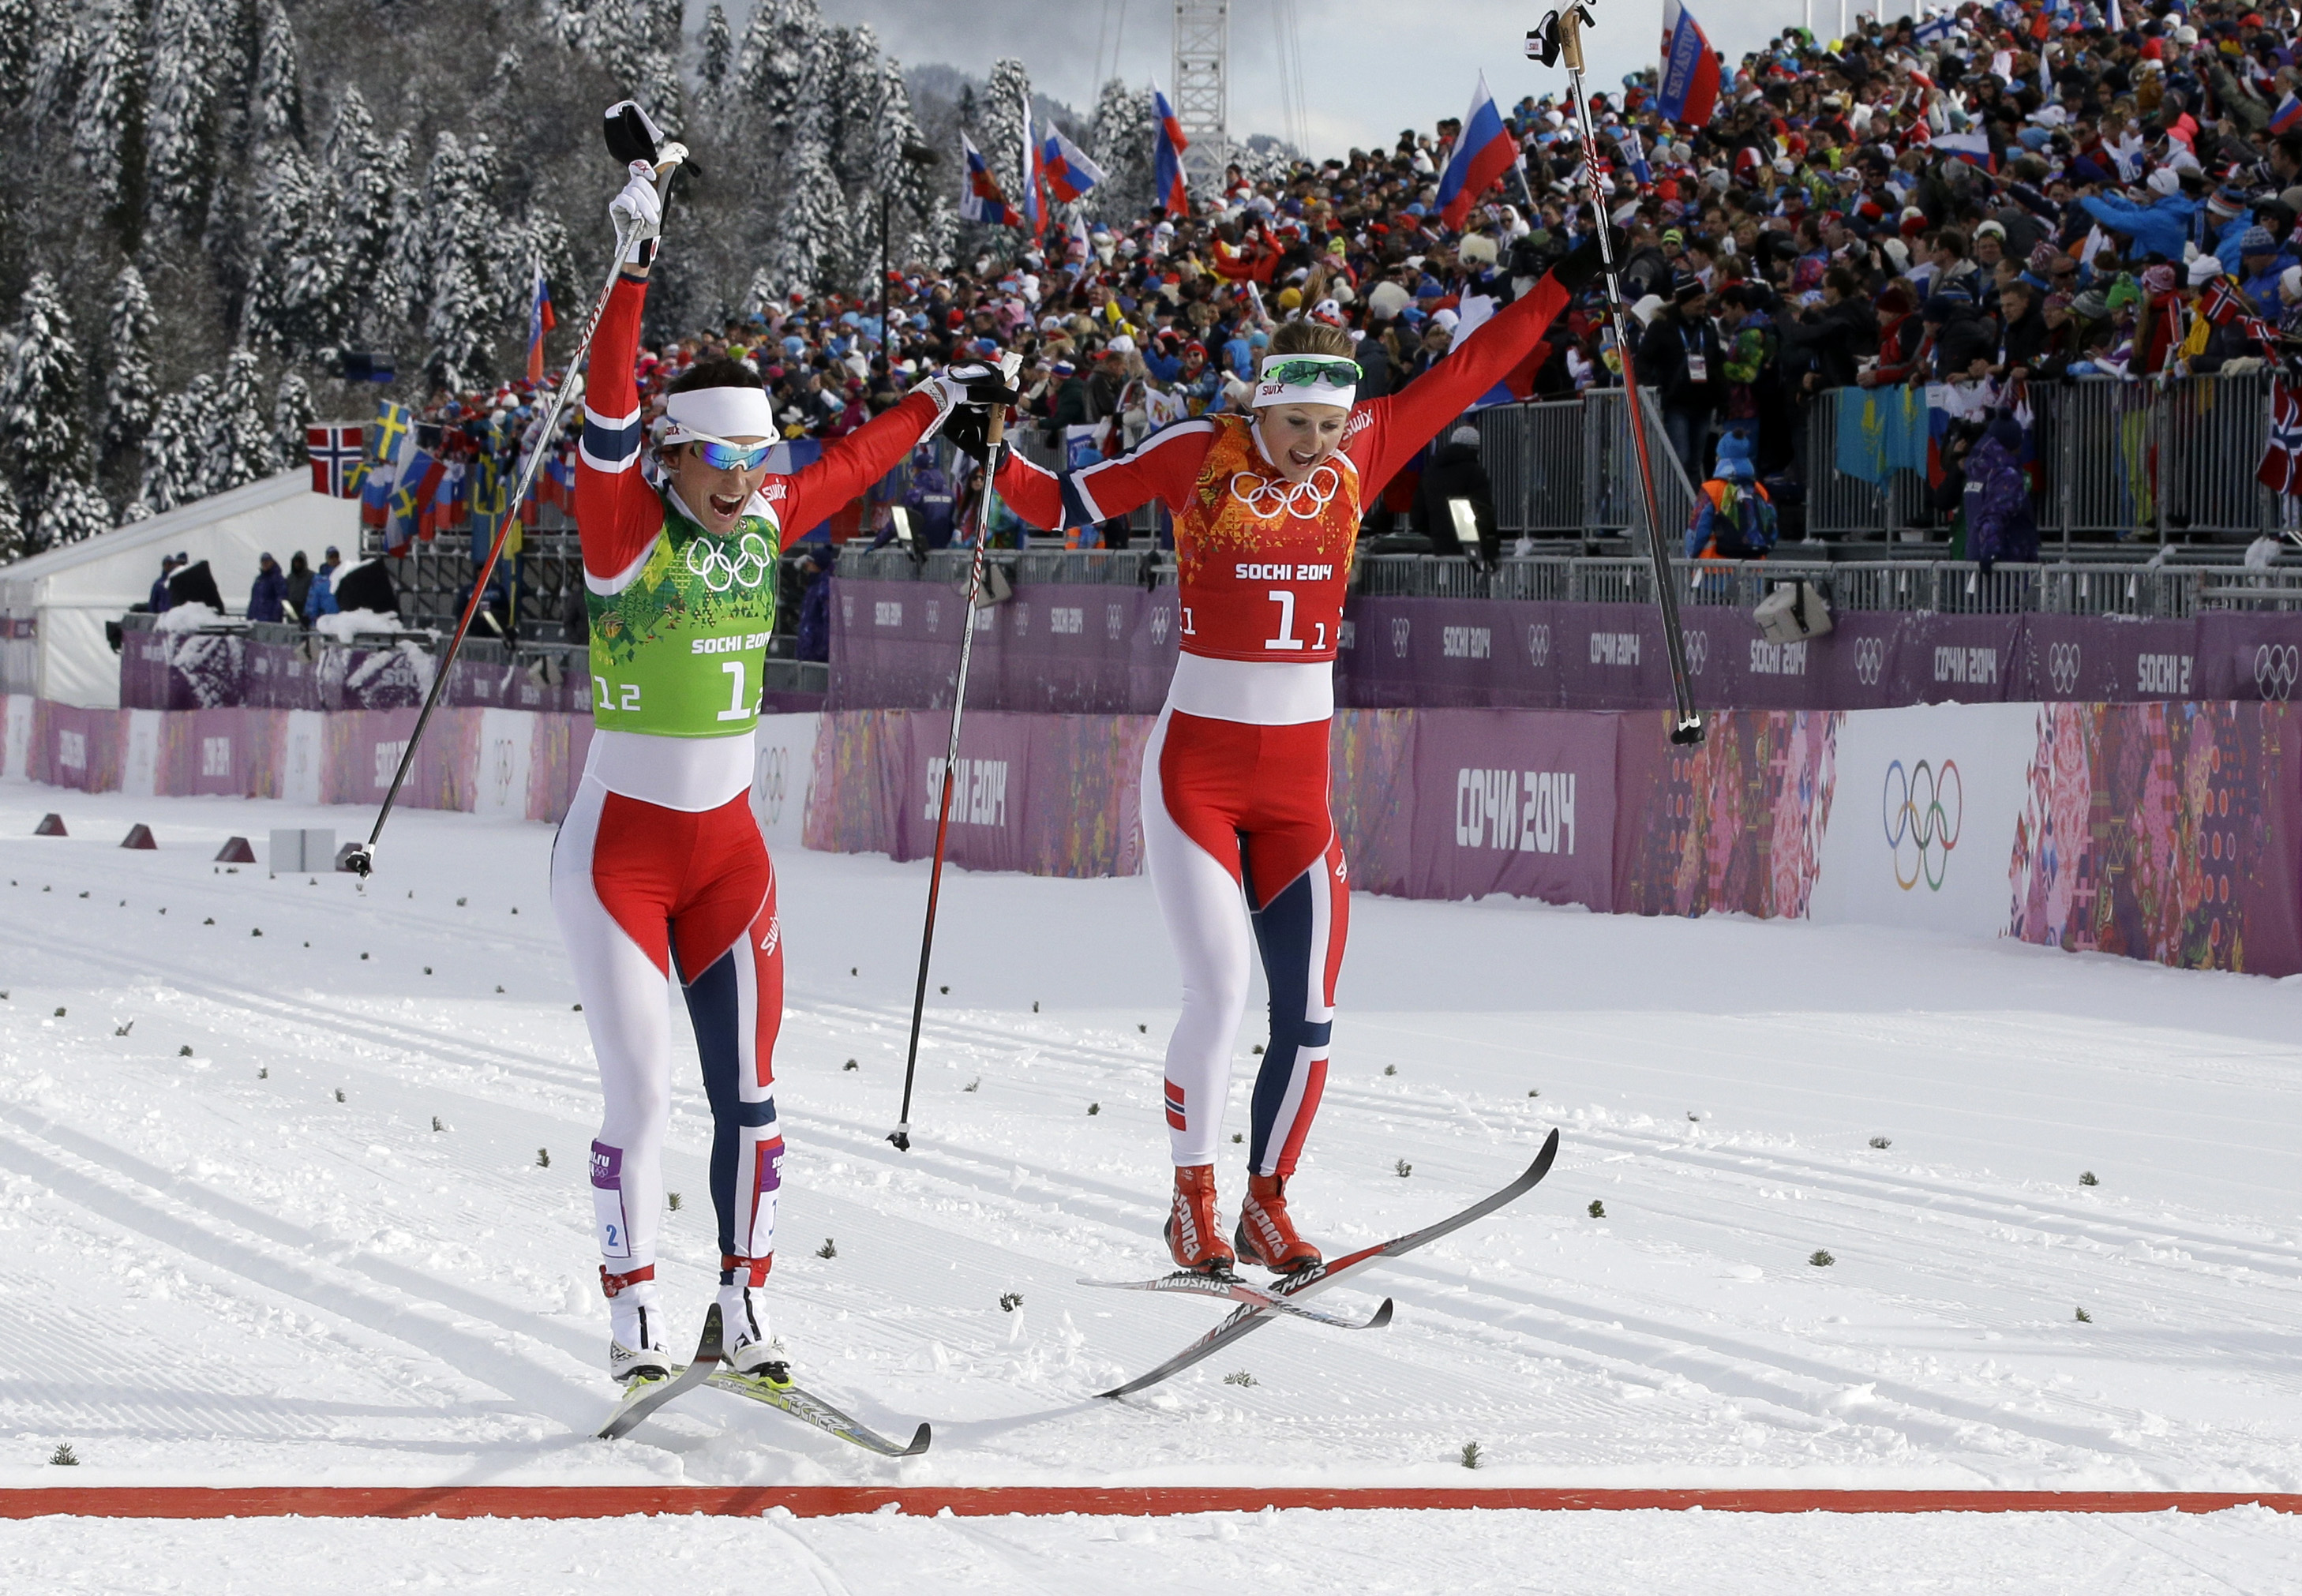 Norway's Marit Bjoergen, left, and Ingvild Flugstad Oestberg celebrate winning the gold medal in the cross-country team sprint competitions at the 2014 Winter Olympics, Wednesday, Feb. 19, 2014, in Krasnaya Polyana, Russia. (AP Photo/Lee Jin-man)